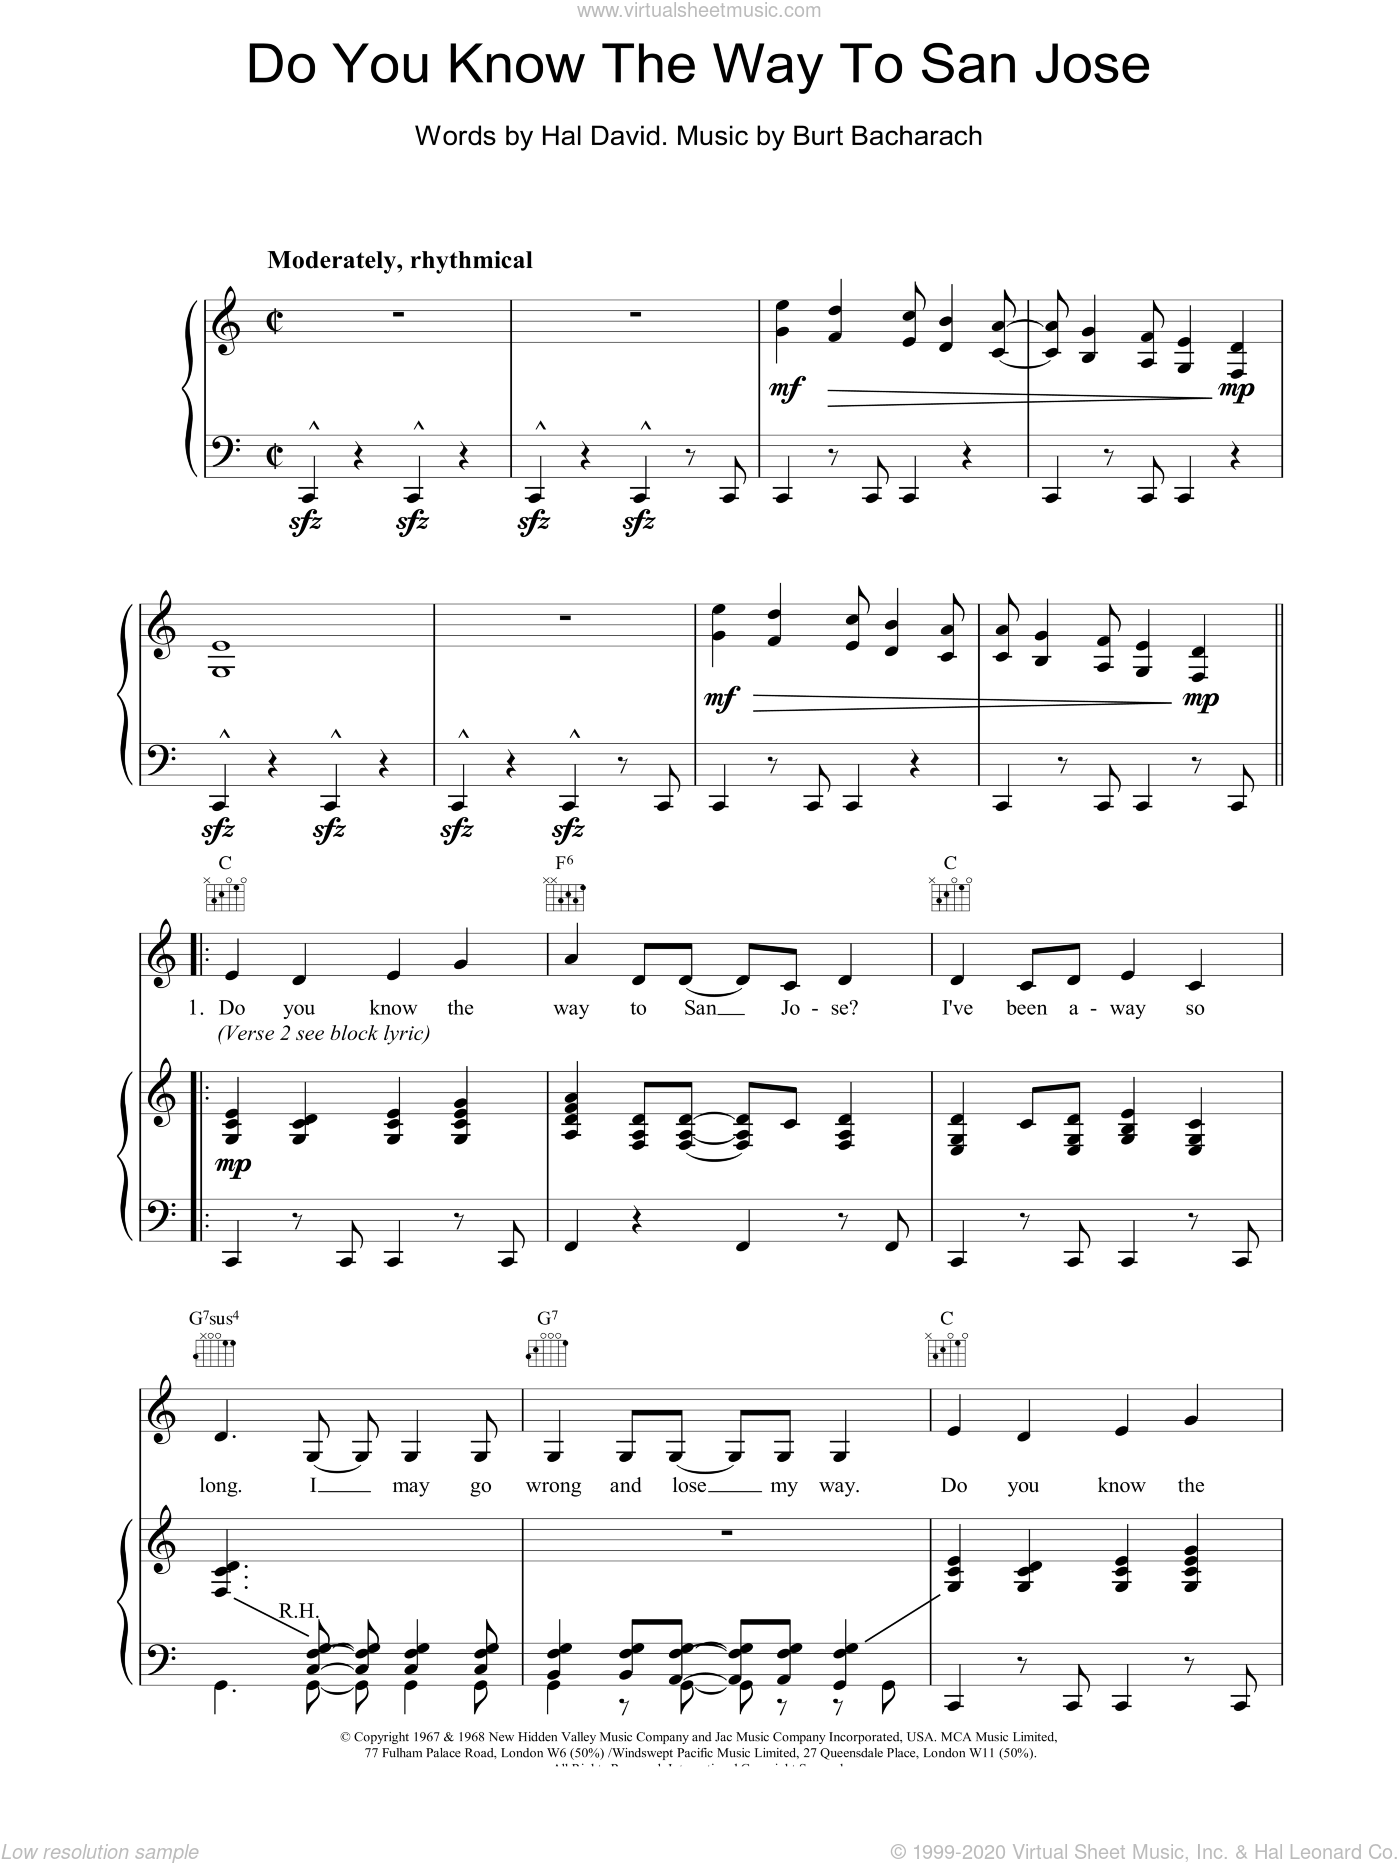 Do You Know The Way To San Jose sheet music for voice, piano or guitar by Burt Bacharach. Score Image Preview.